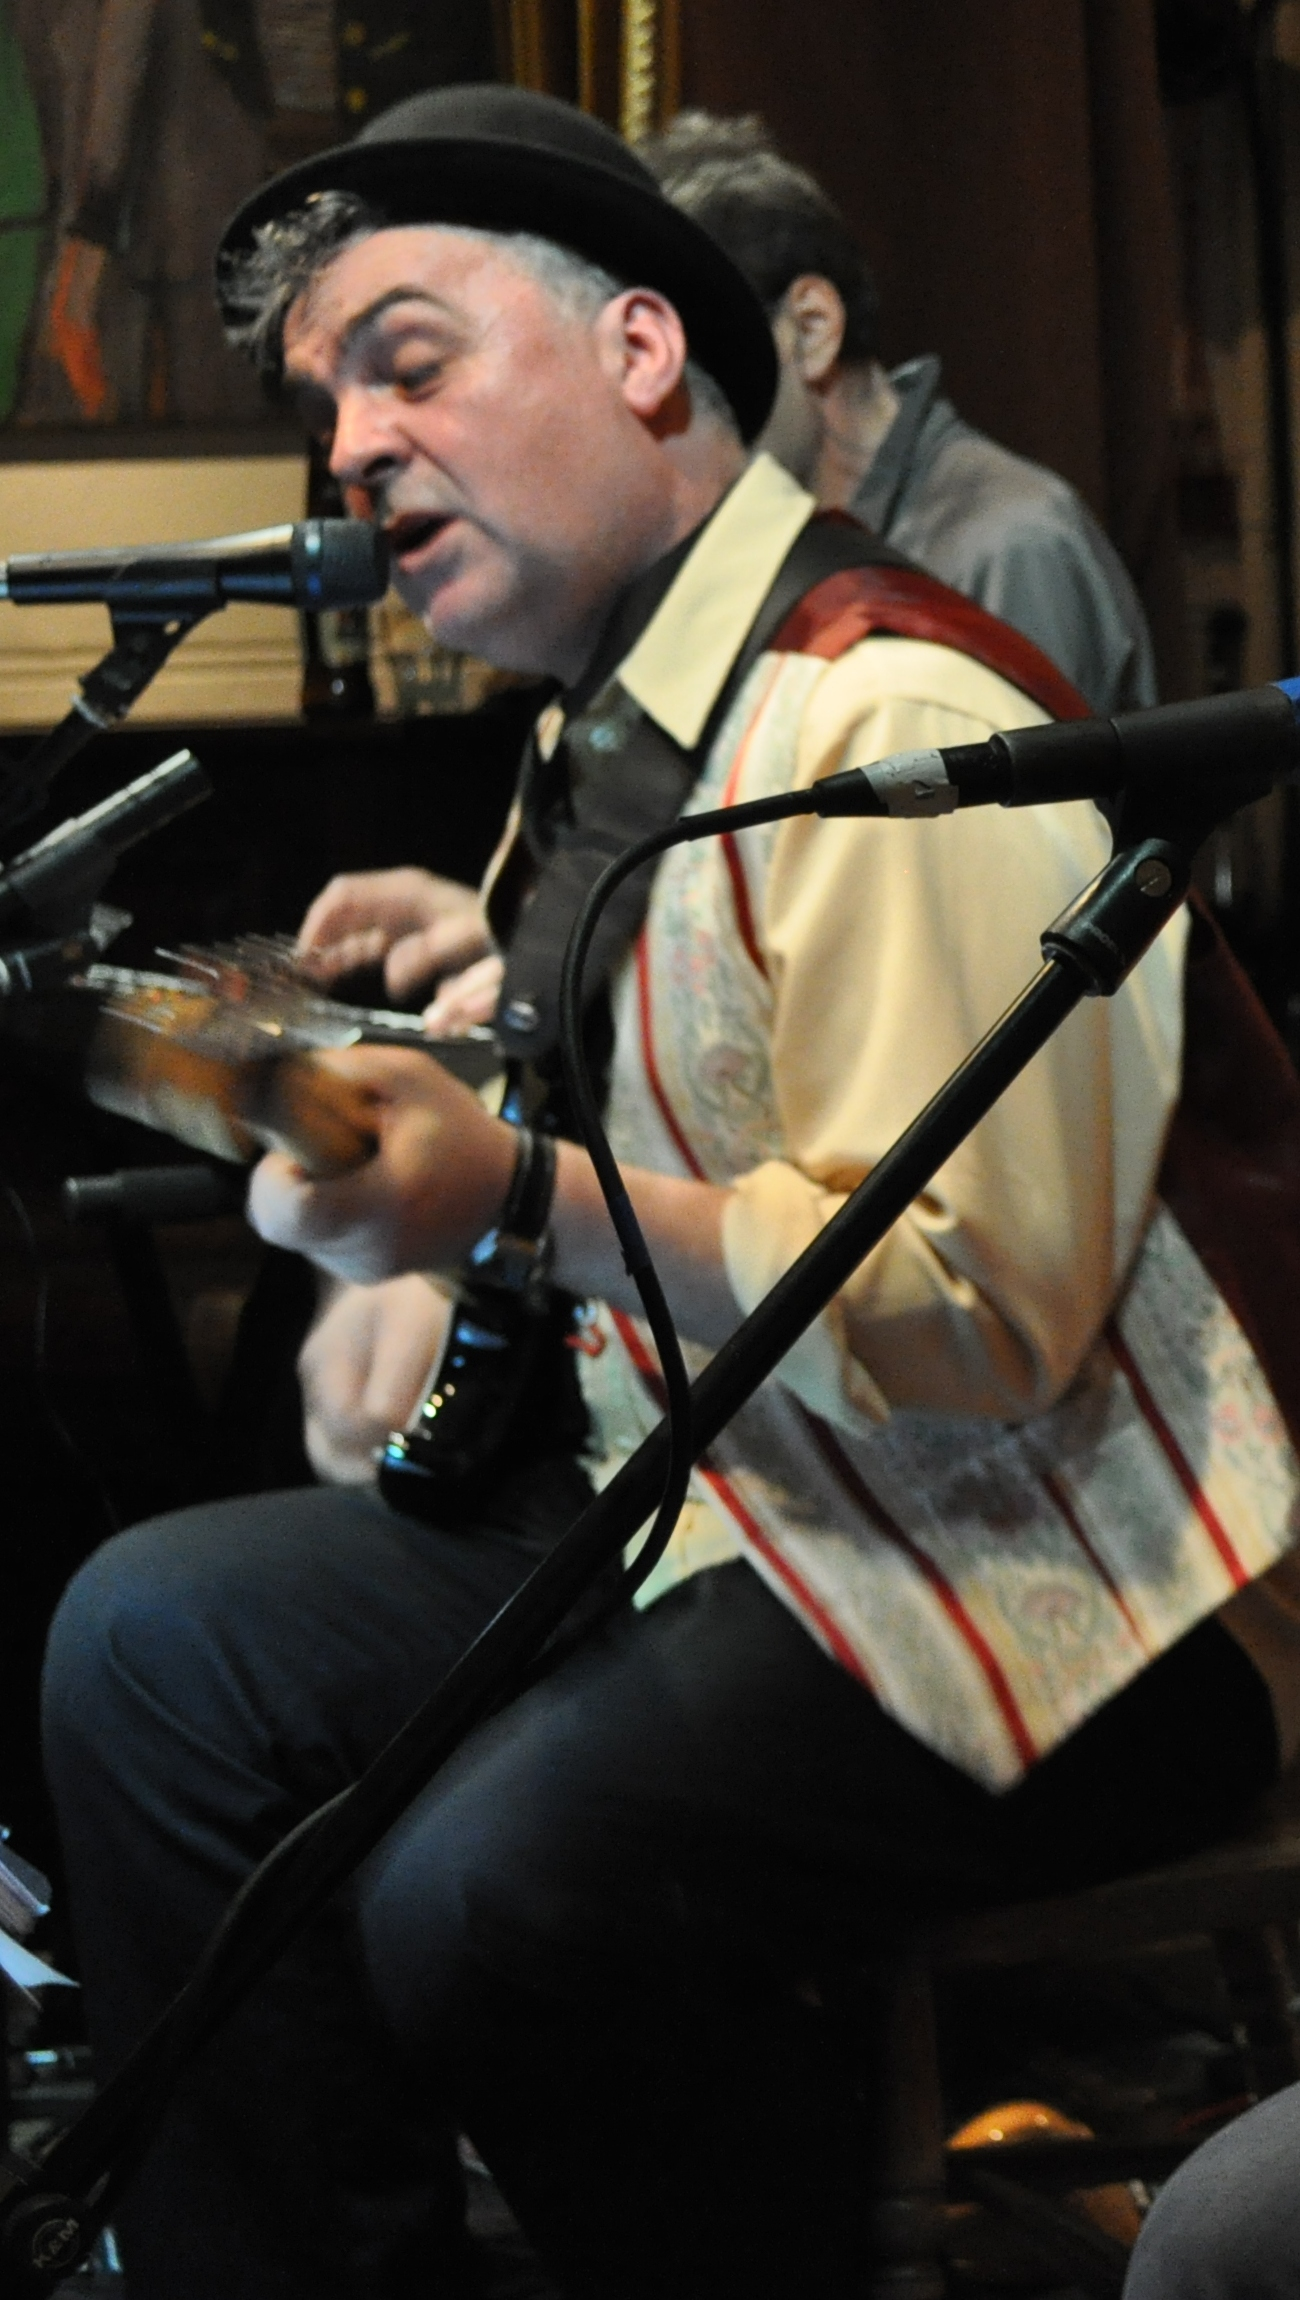 The London Bouzouki Player - Greek Musician